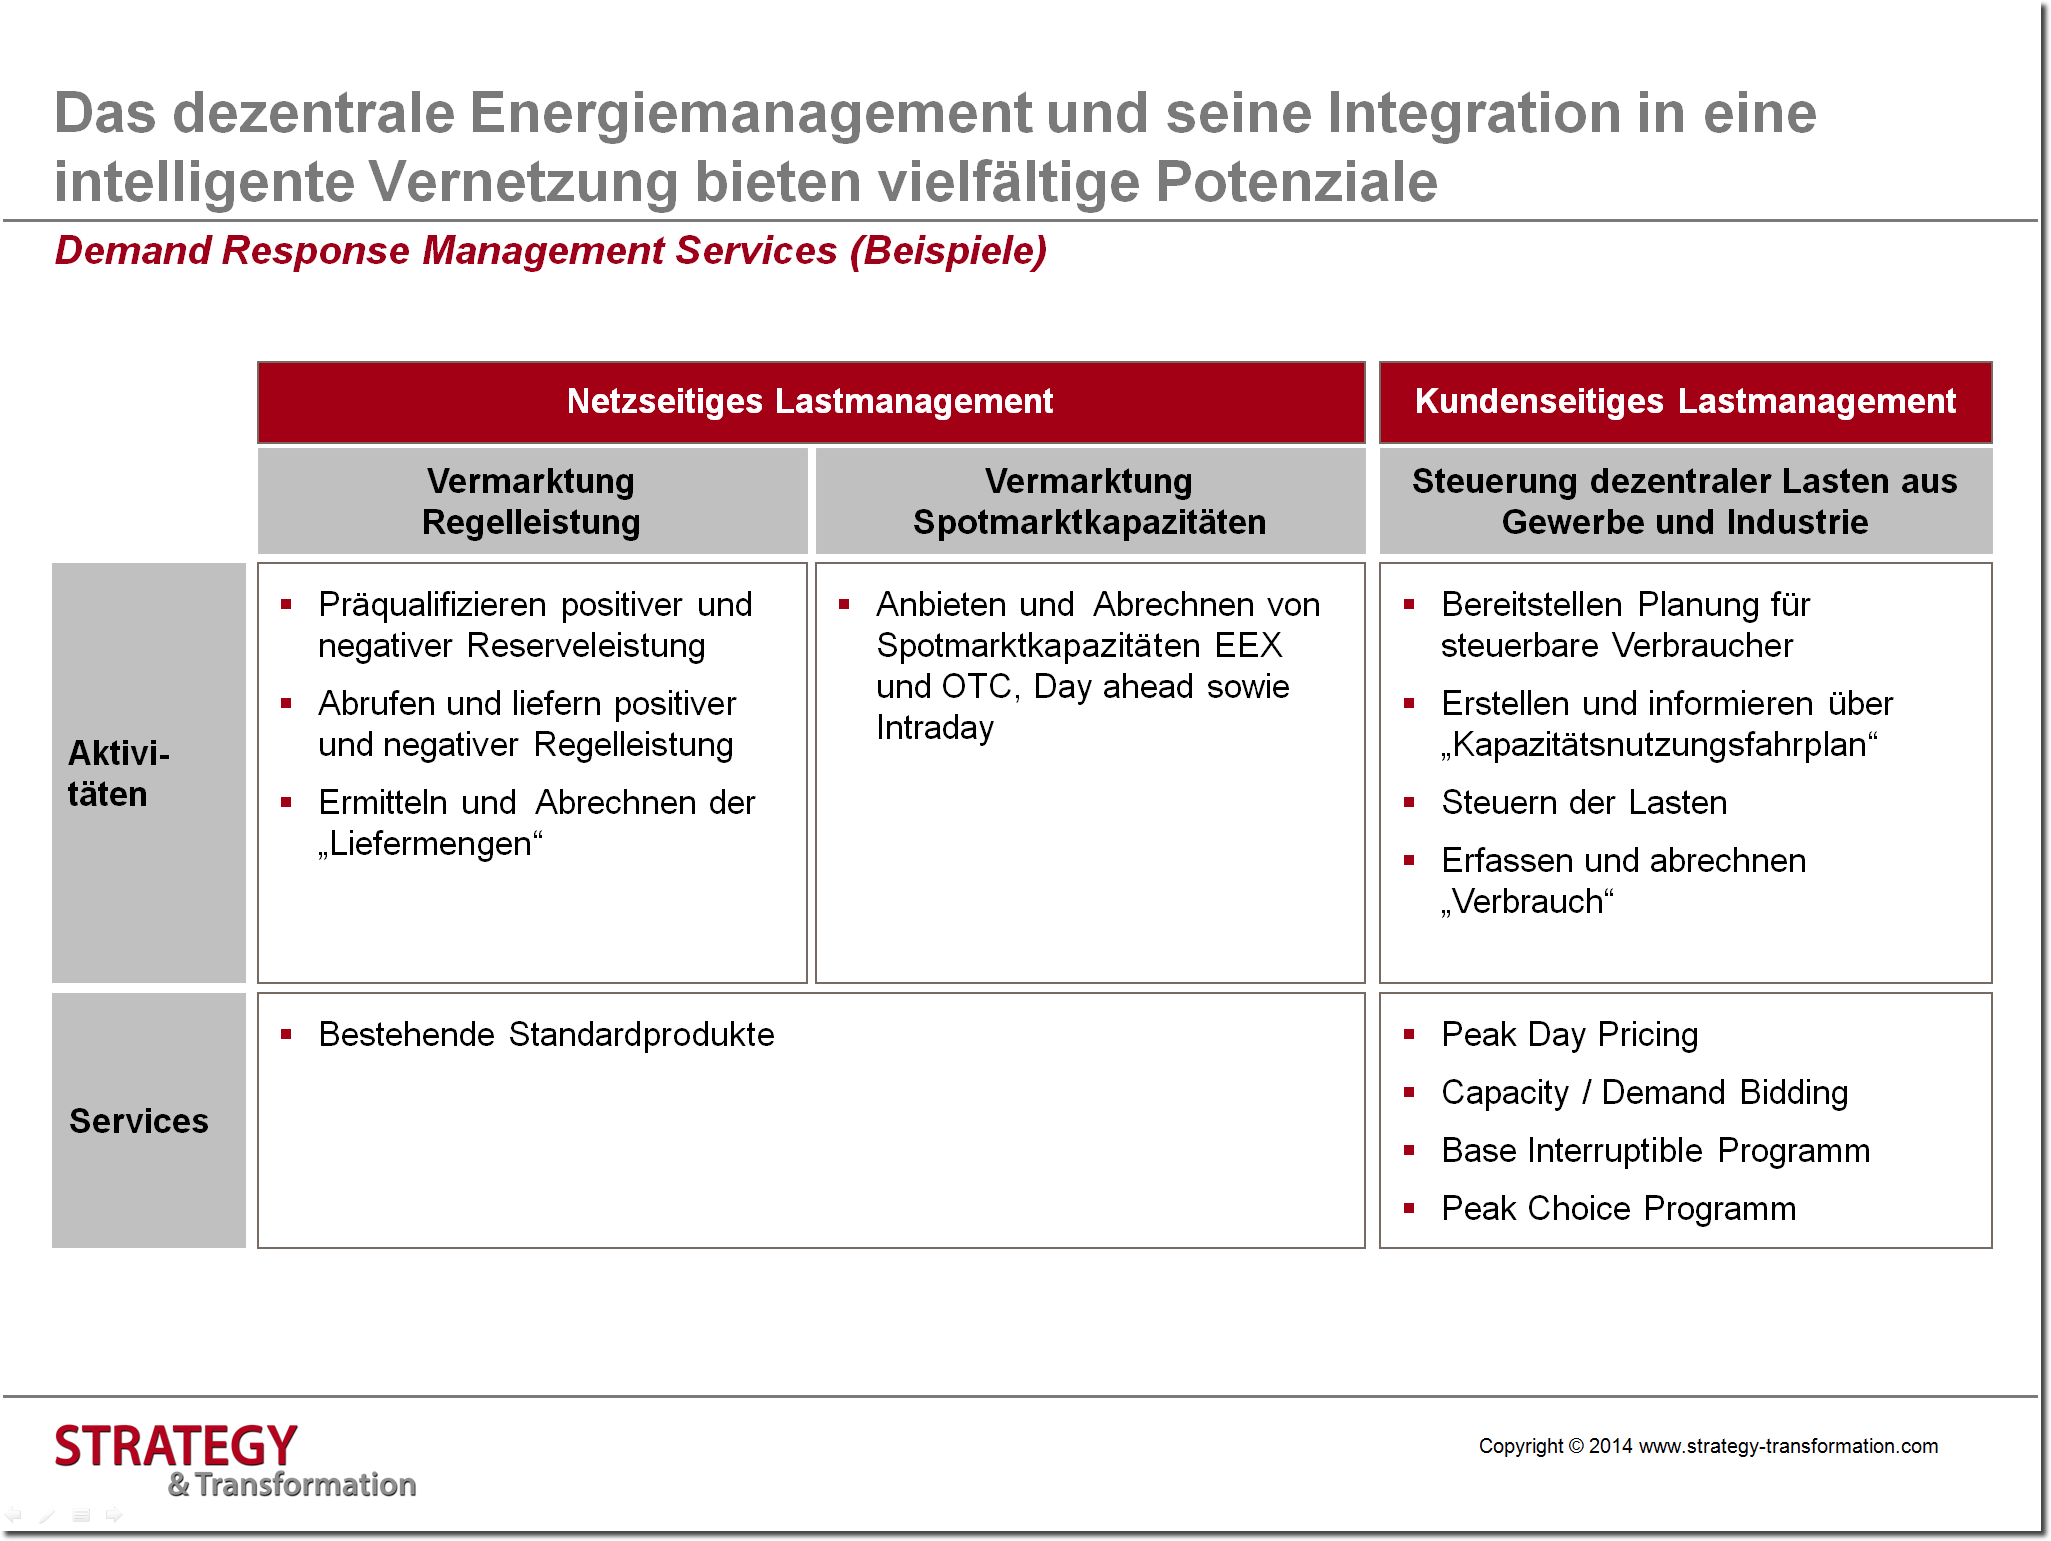 Digitale Transformation Energie_Demand Response Management Services